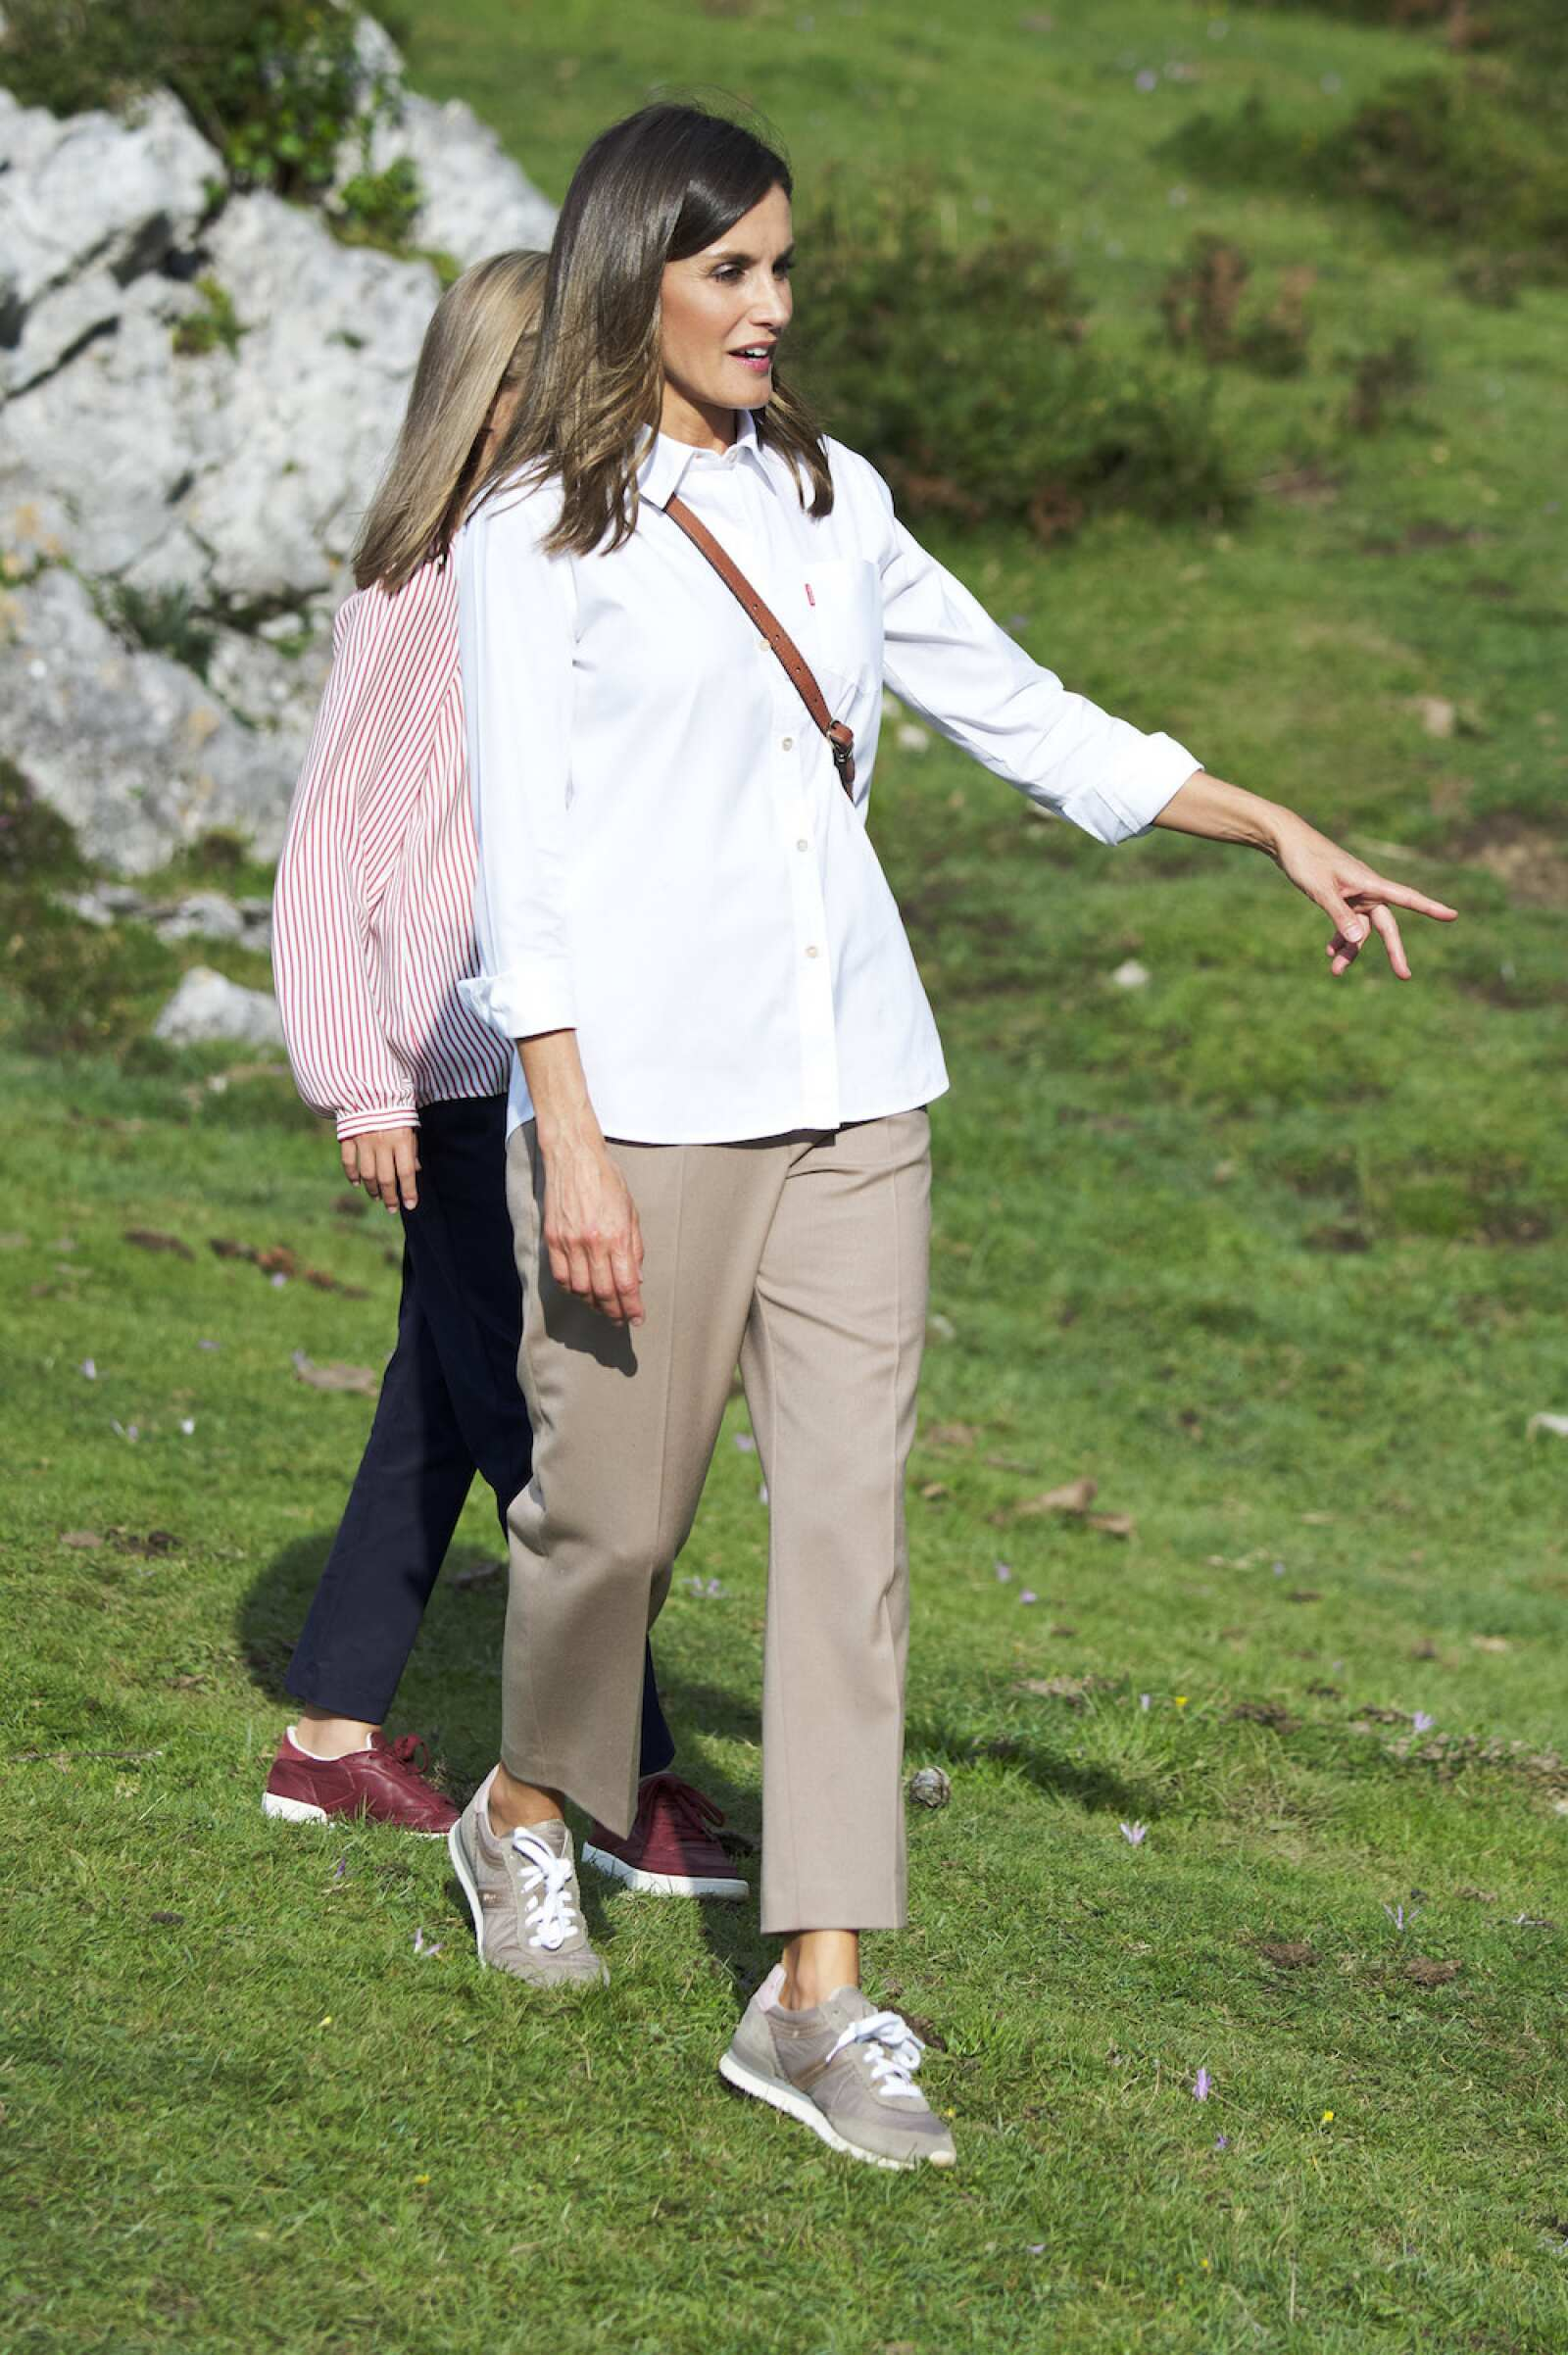 Spanish Royals Attend 13th Centenary Of The Reign Of Asturias